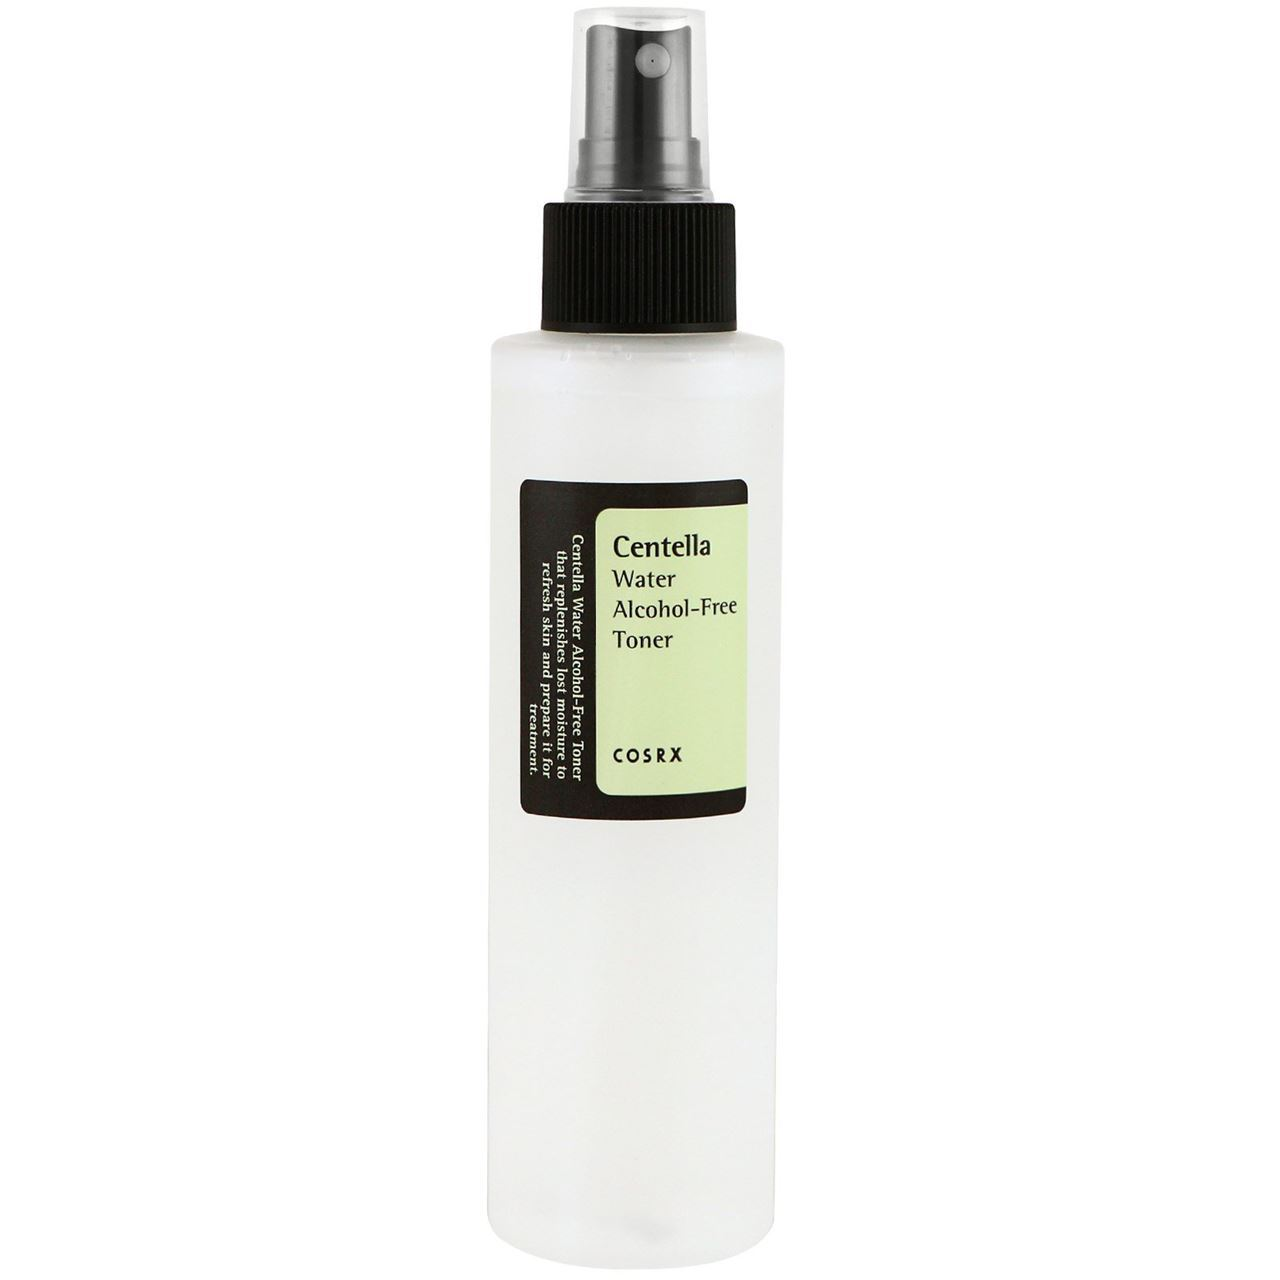 Picture of  Cosrx Centella Water 100 Alcohol-Free Toner 150ml